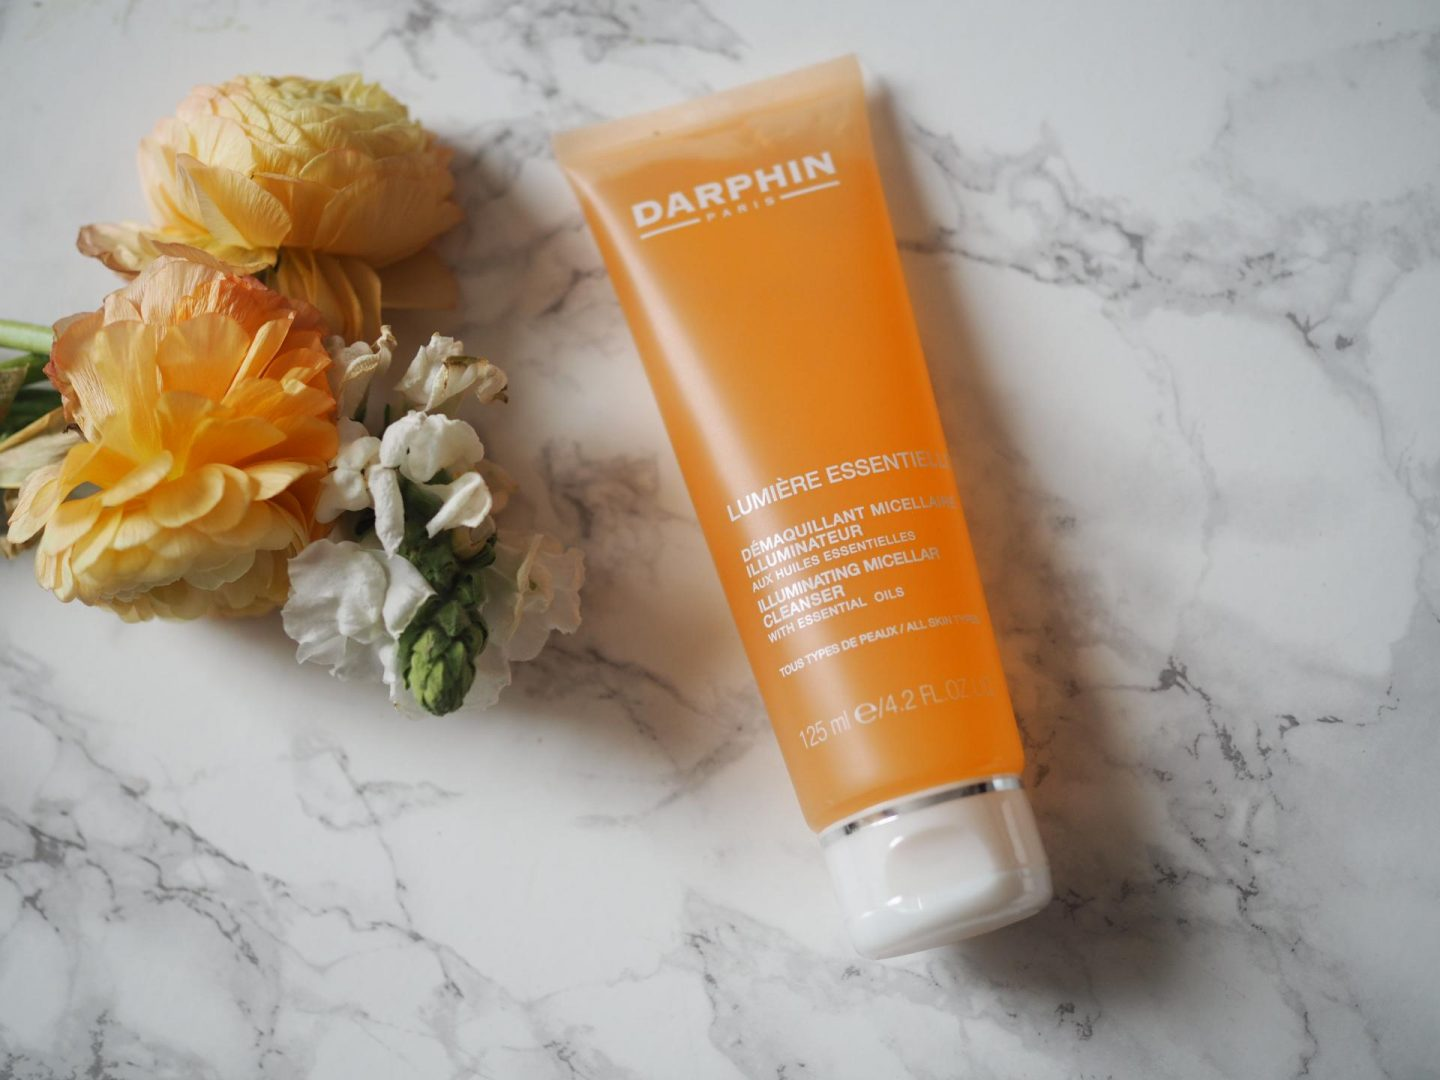 Darphin Lumiere Essentielle Illuminating Micellar Cleanser